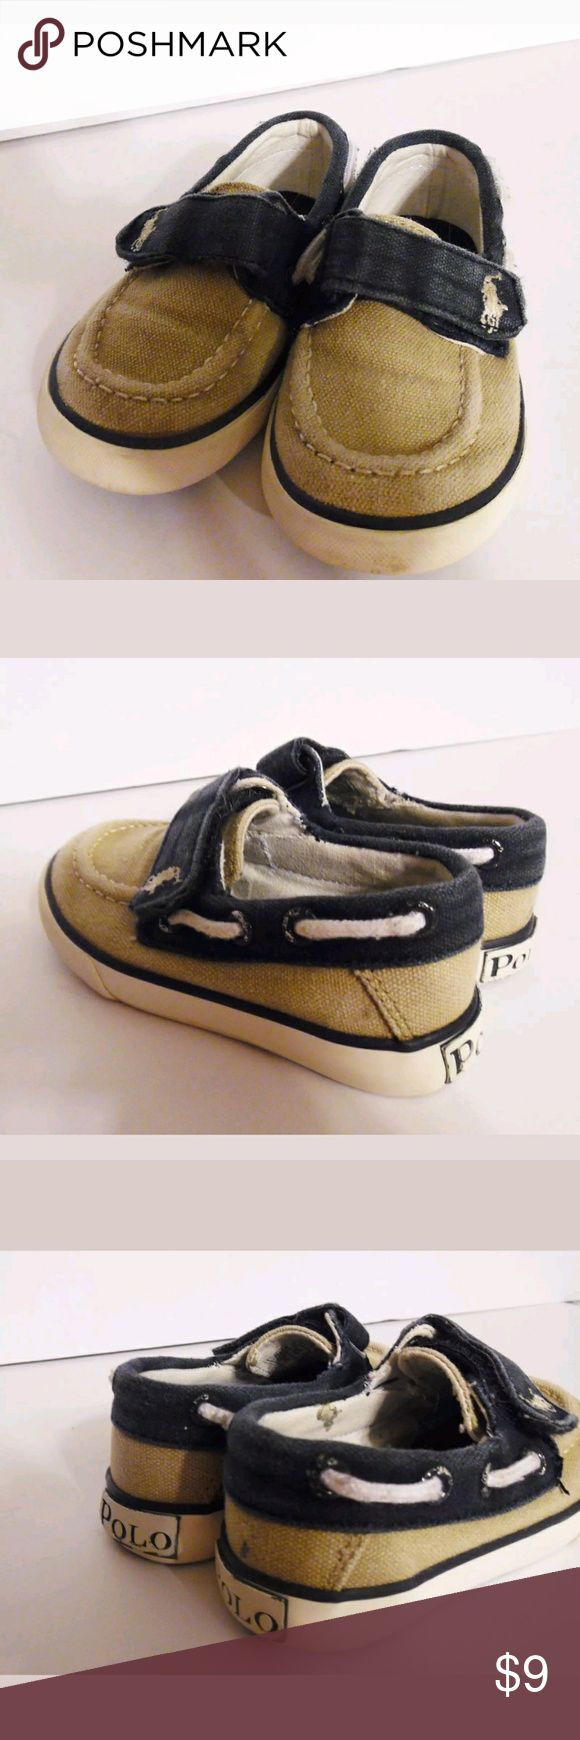 Ralph Lauren Polo canvas boat shoes RALPH LAUREN Polo  ___________________________________________________________________________   Color: Tan, Blue  Style: Canvas Casual  Size: Toddler 6     Condition: Previously Owned    Material: Canvas  Polo by Ralph Lauren Shoes Sneakers